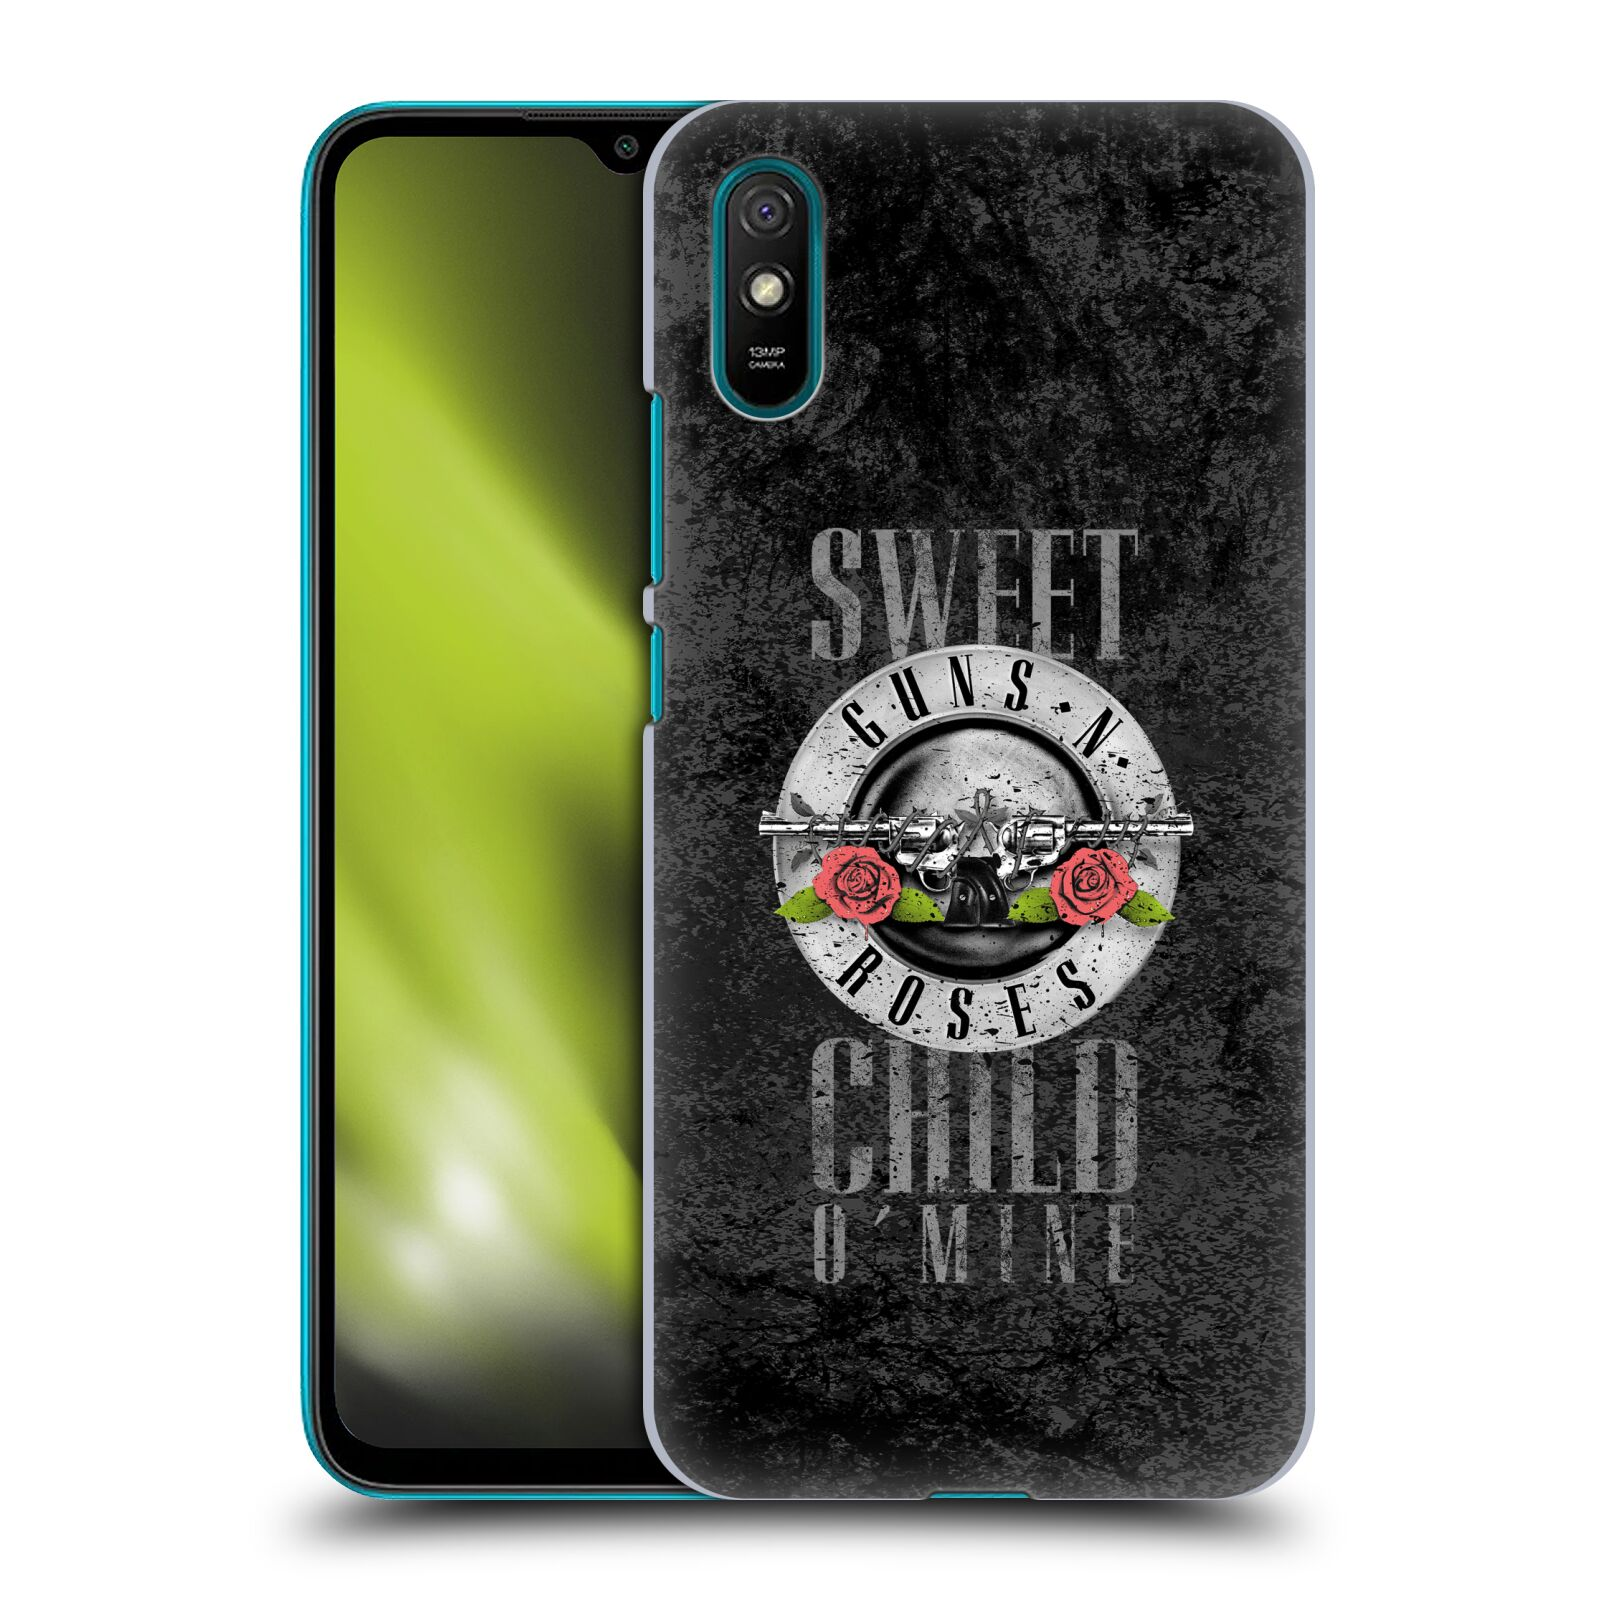 Plastové pouzdro na mobil Xiaomi Redmi 9A / Xiaomi Redmi 9AT - Head Case - Guns N' Roses - Sweet Child